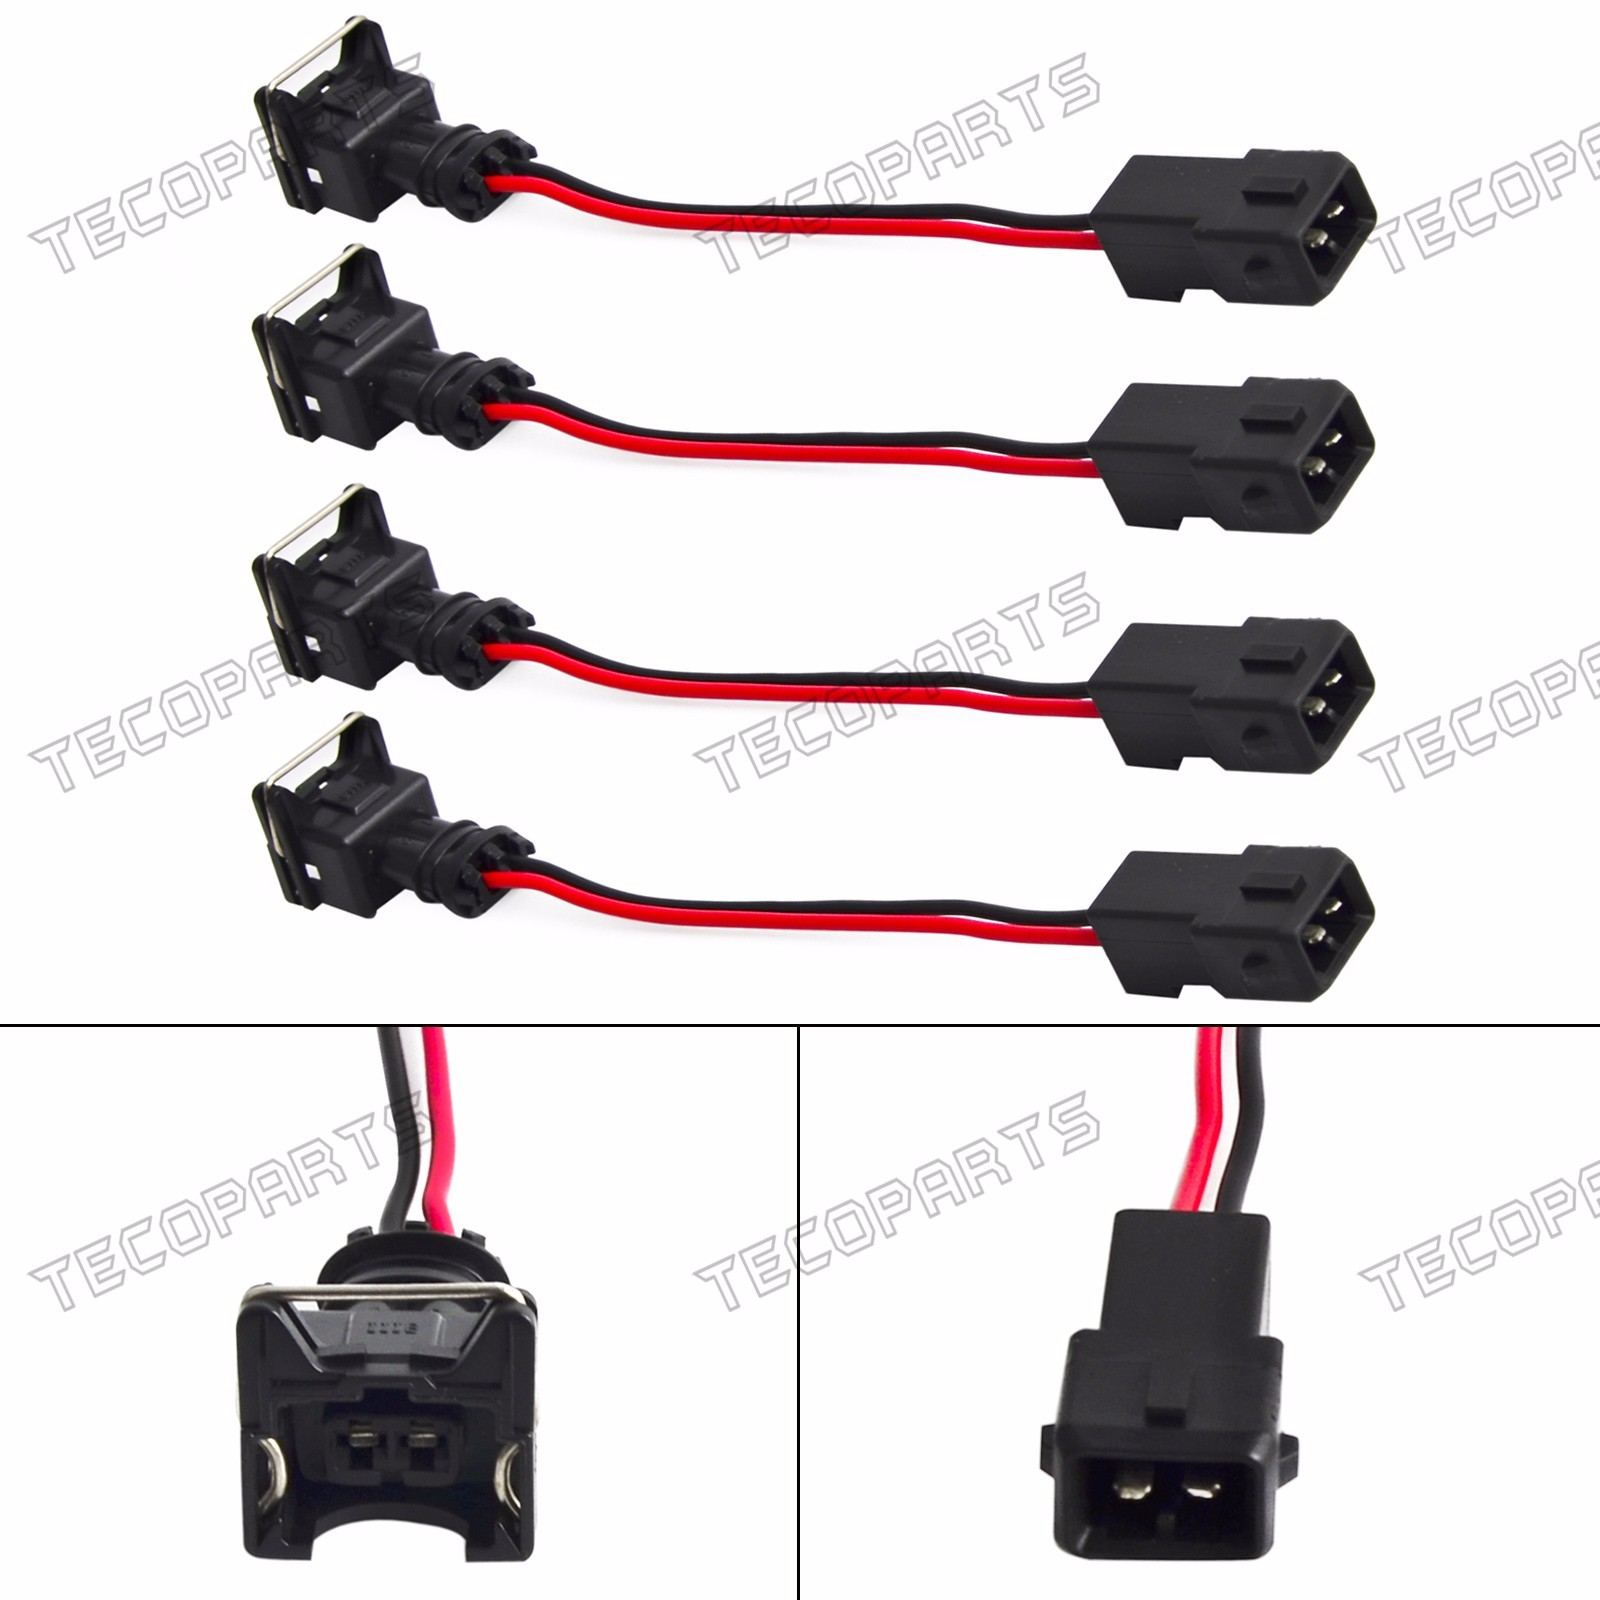 Details about 4 x Fuel Injector Conversion Harness for Obd2 To Obd1 EV1  Honda Acura RC Adapter